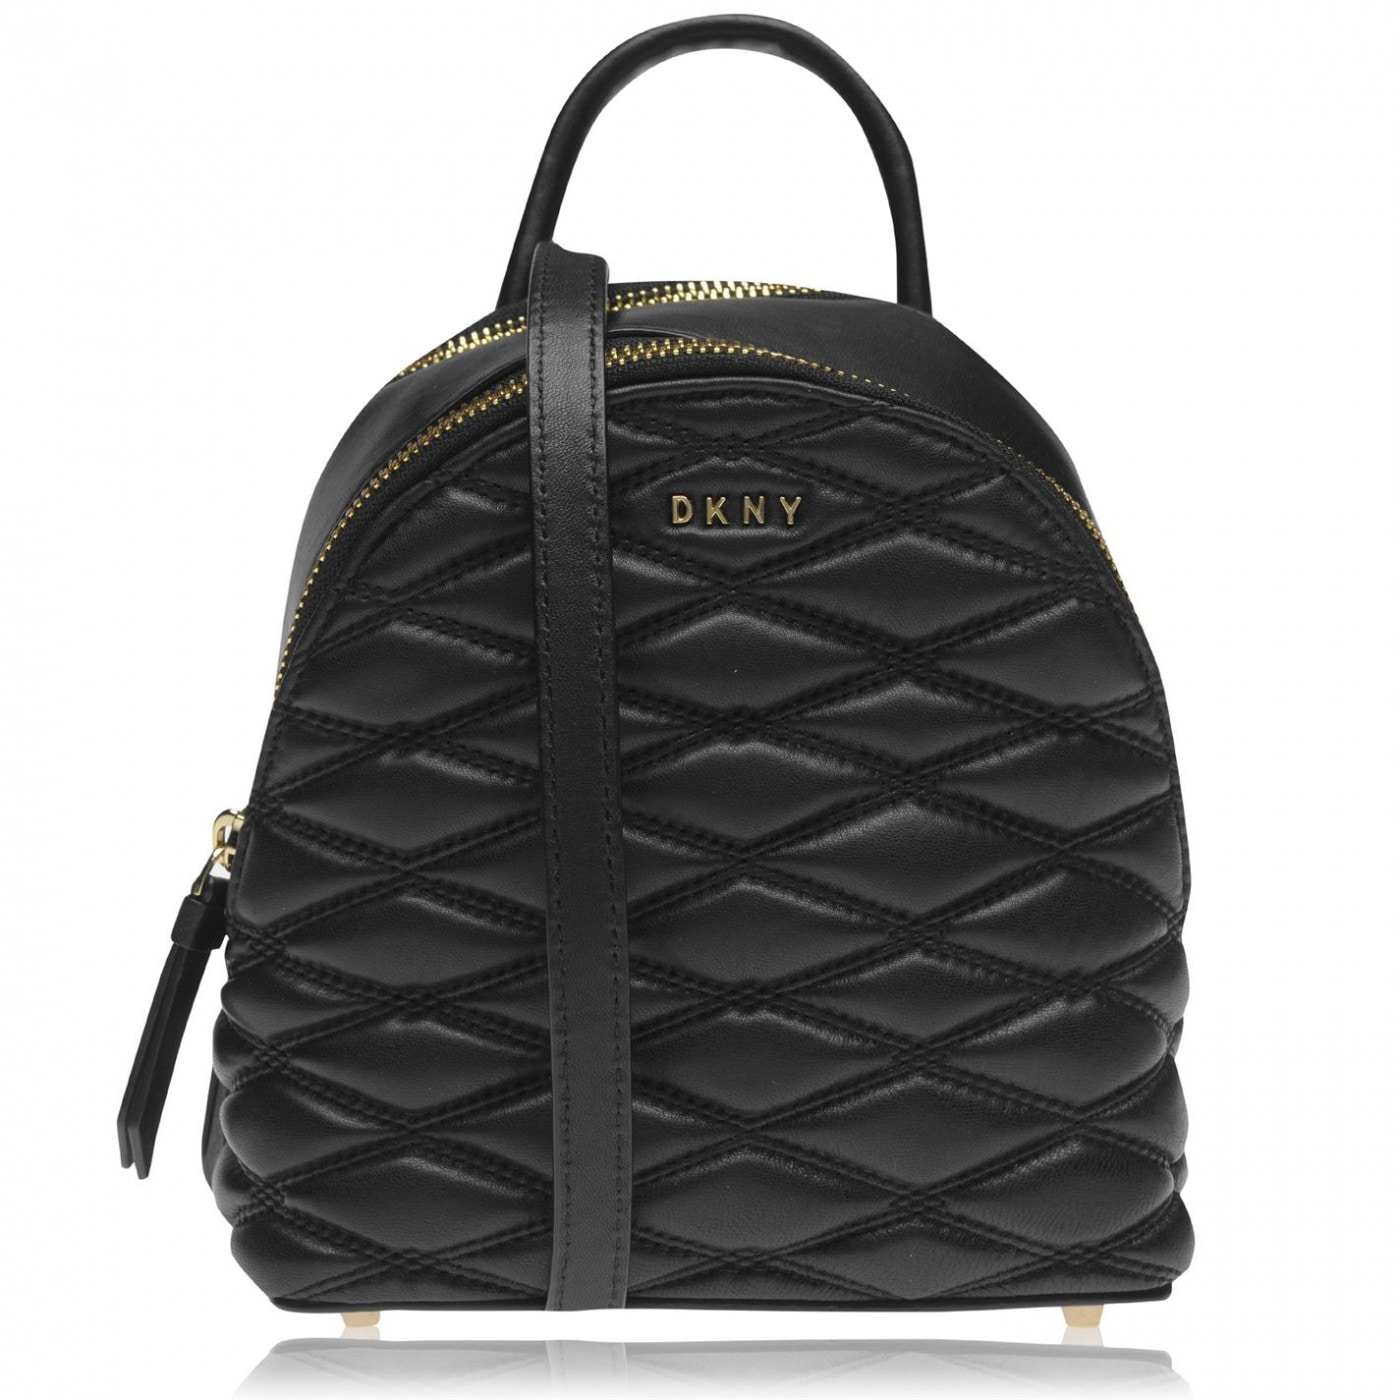 DKNY Leather Bag